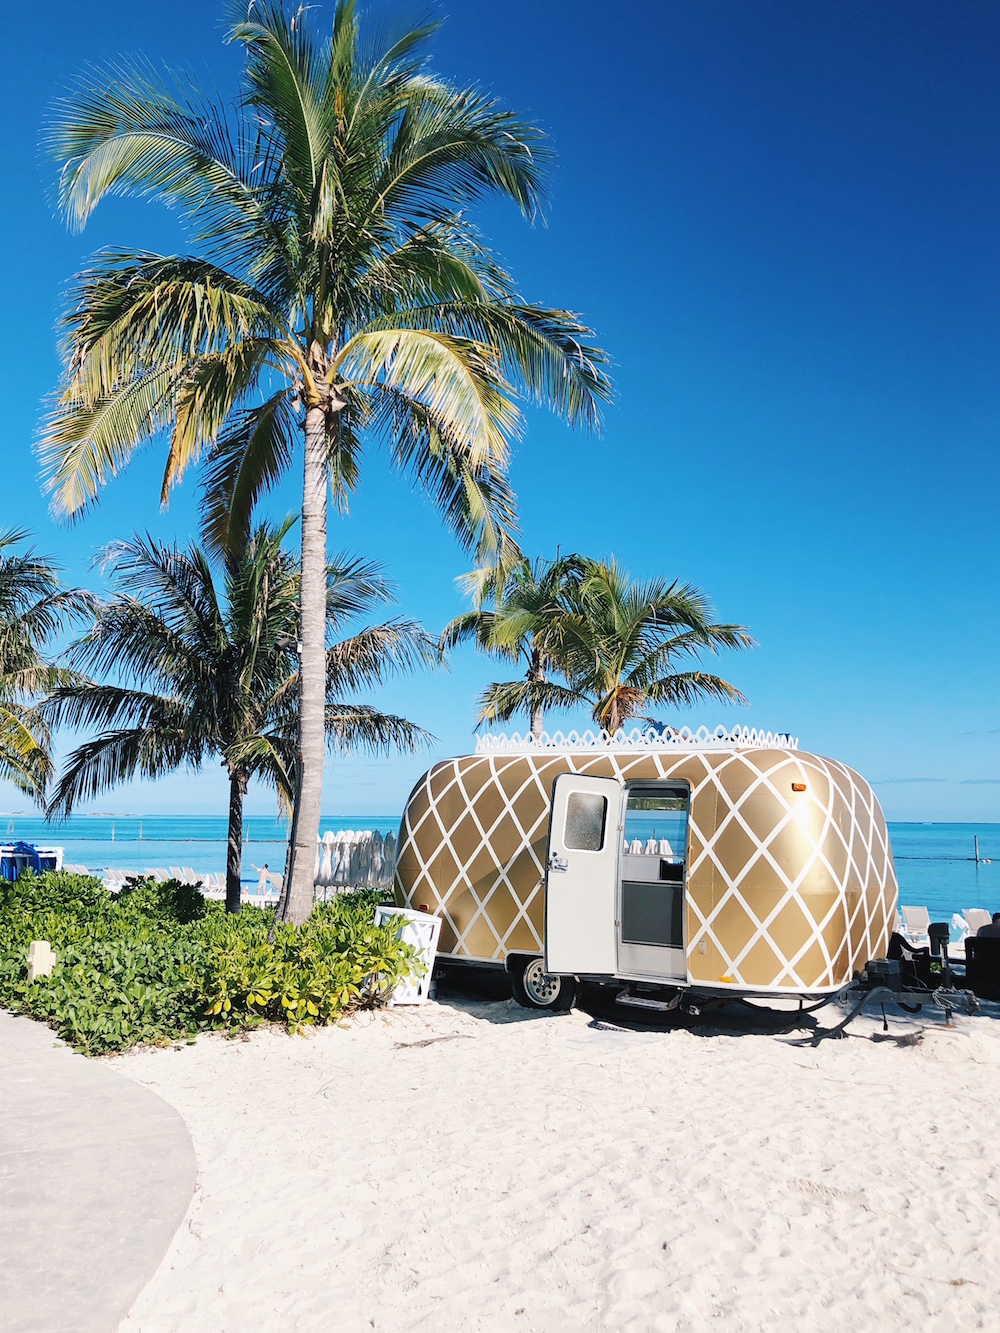 Gold white airstream pineapple print food truck on beach Grand Hyatt Baha Mar Bahamas